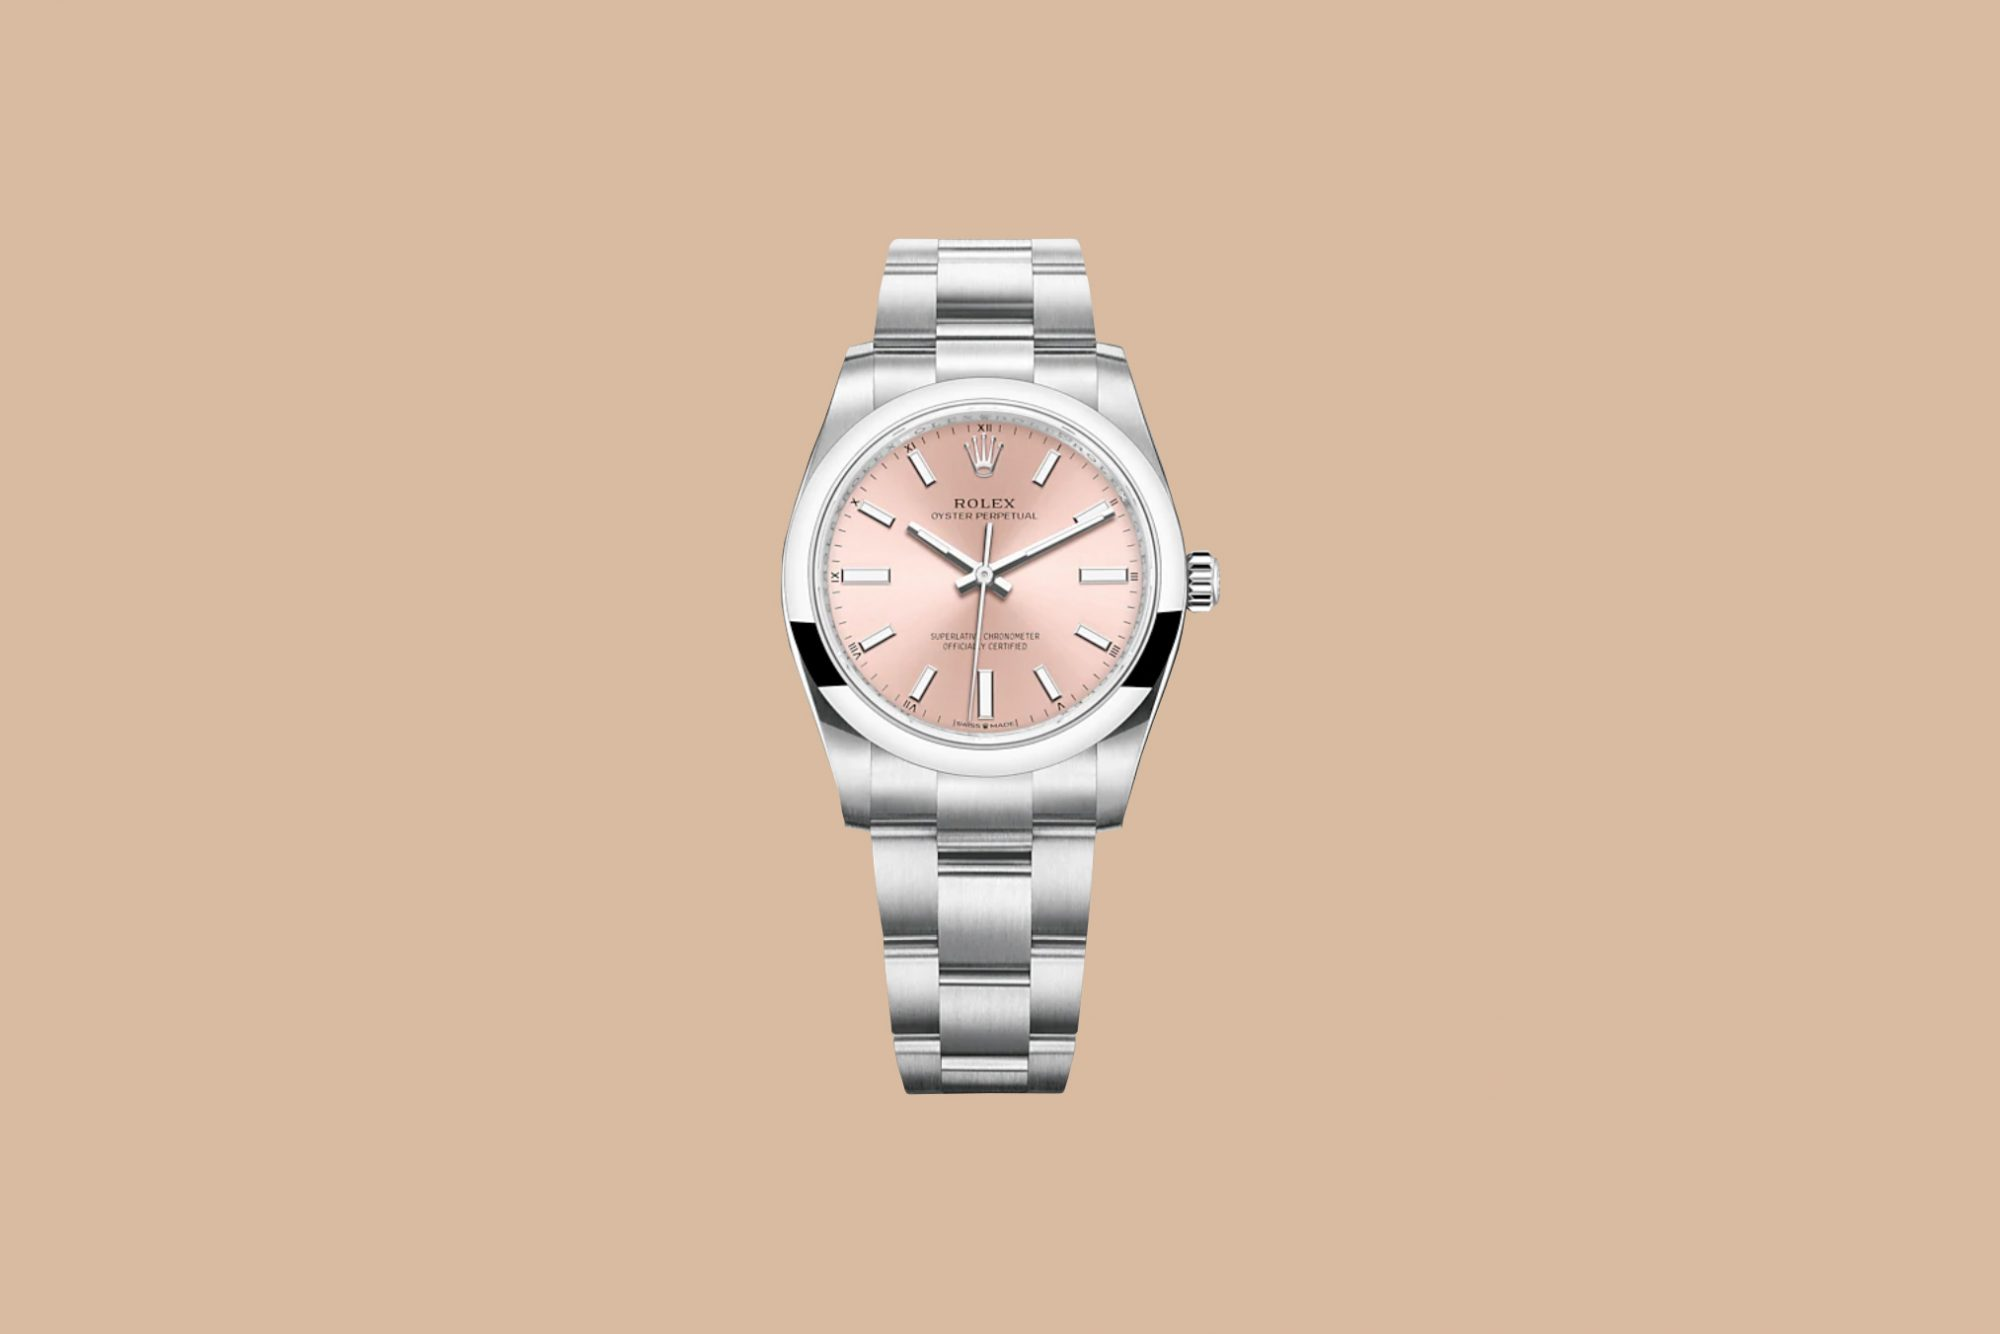 """Rolex """"Oyster Perpetual"""" Watch with Pink Face"""